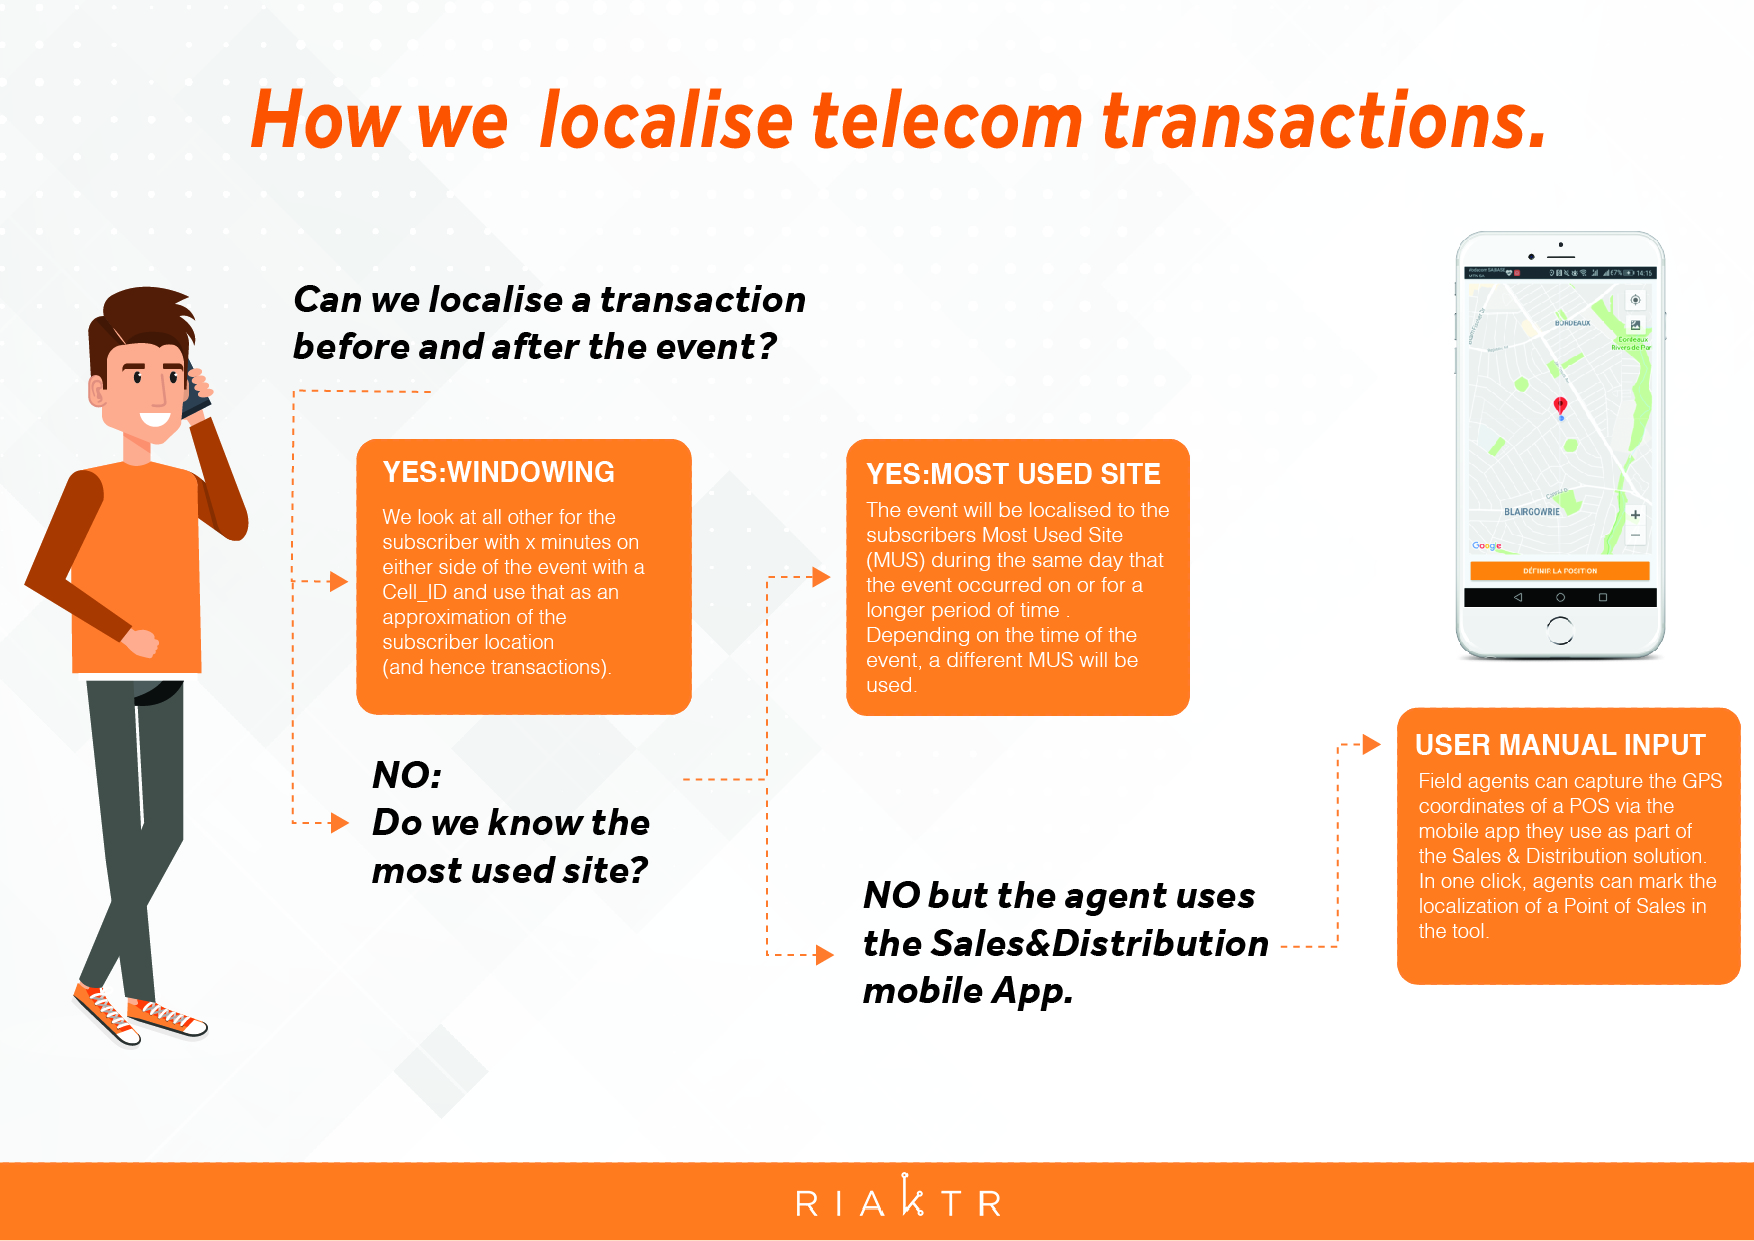 How to localise telecom transactions by Riaktr